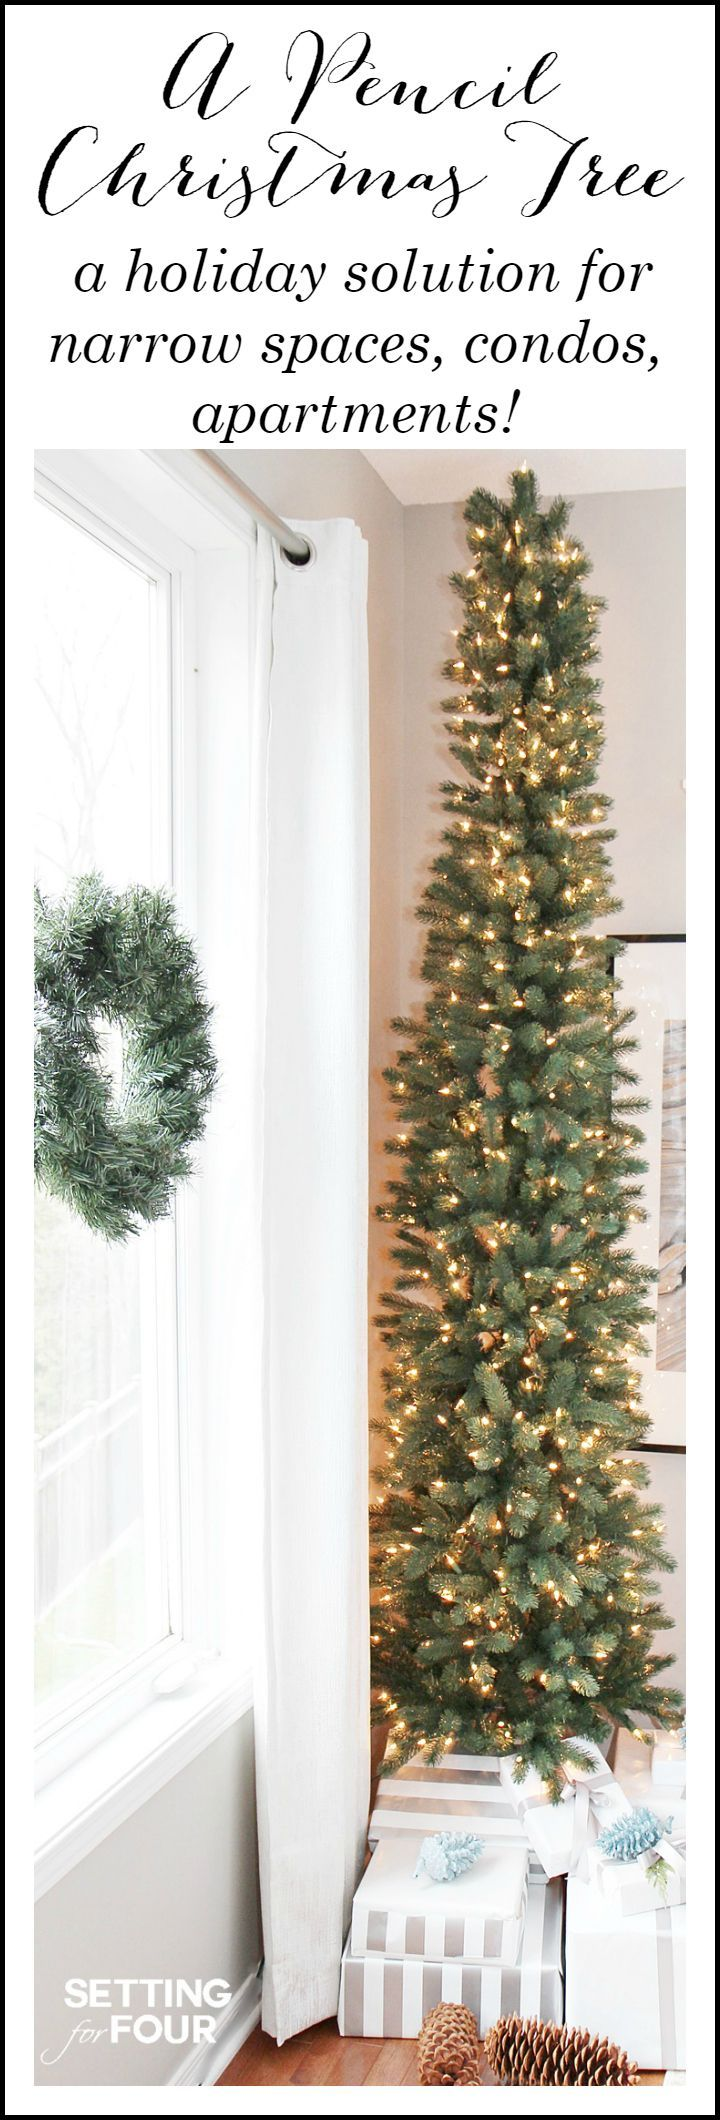 See how you can decorate any narrow spot in your home with a PENCIL CHRISTMAS TREE - a slim tree style, designed for narrow spaces like foyers, hallways and corners! PERFECT for apartments and condos! #christmas #christmastree